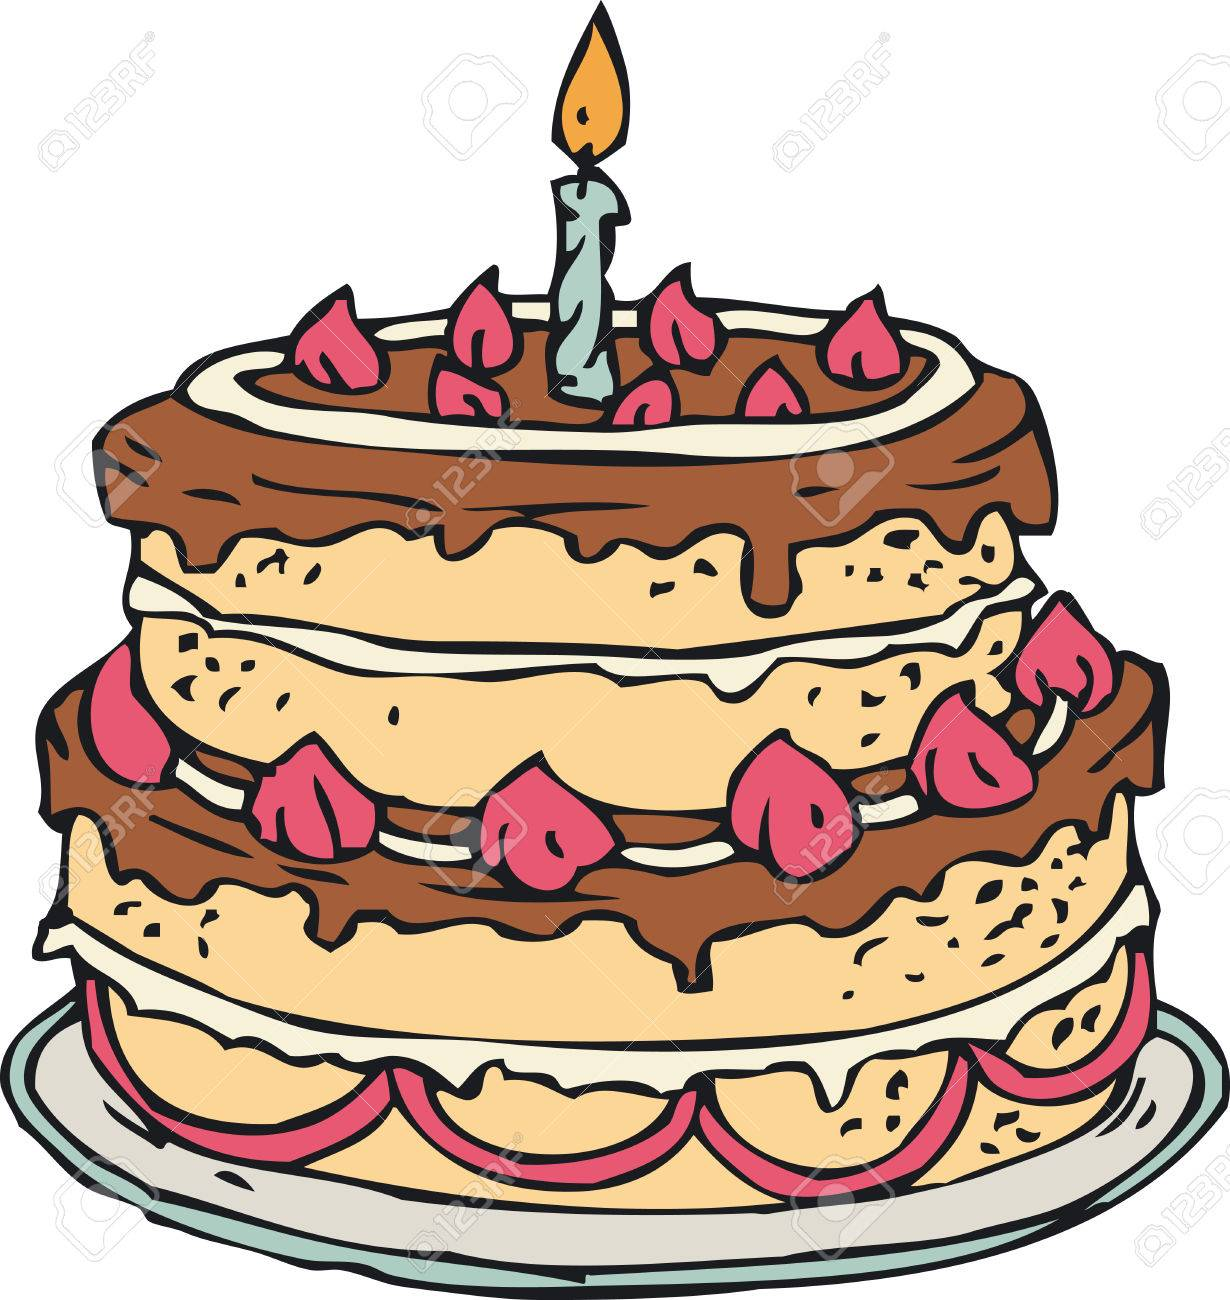 Birthday Cake With Candle Isolated On White Background Royalty Free